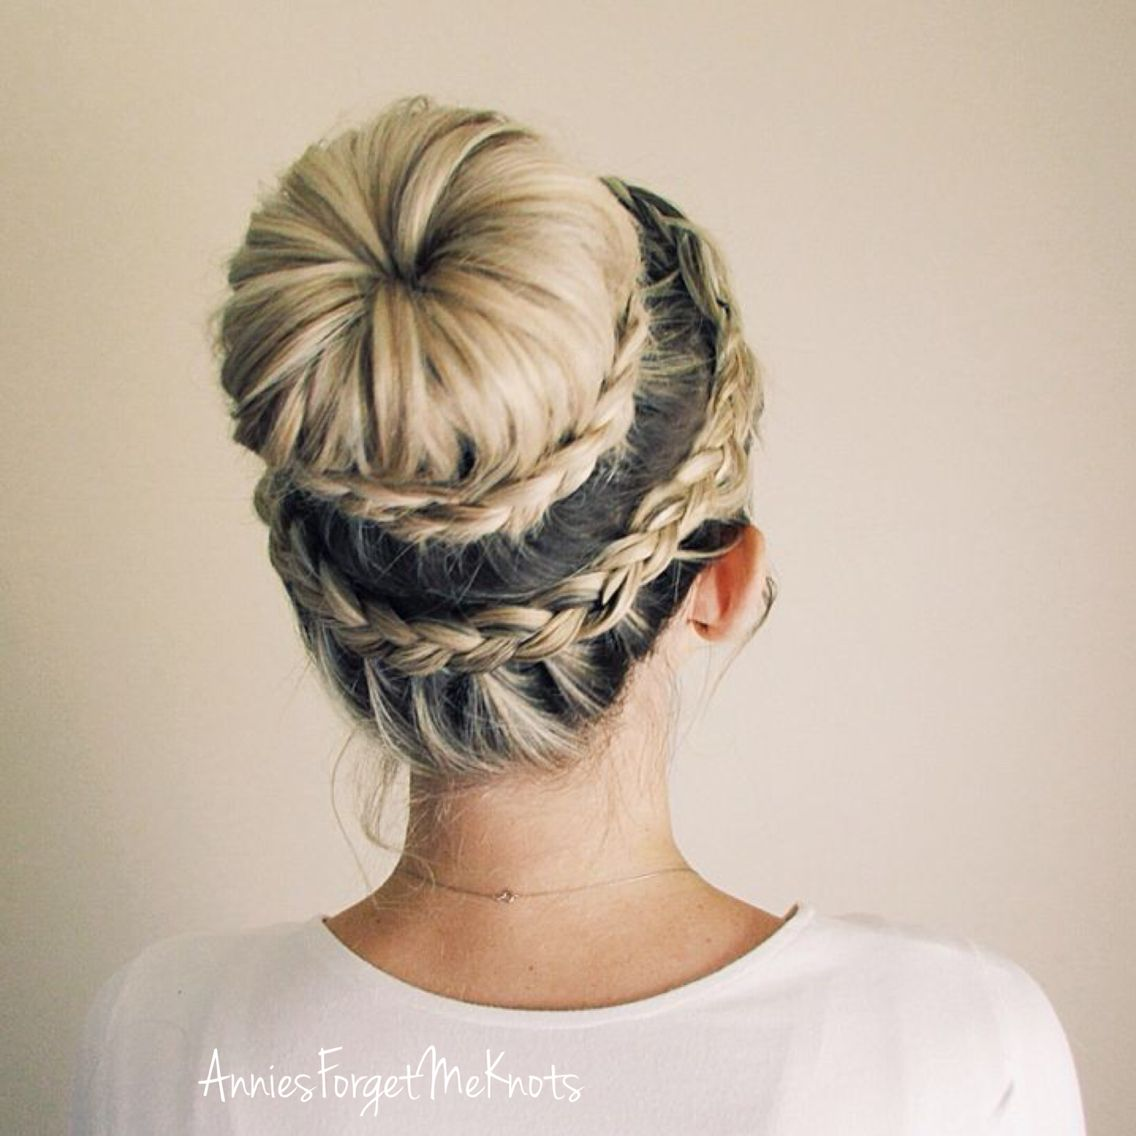 How To Lace Dutch Crown Braid Lace Dutch Braided Bun Ballerina